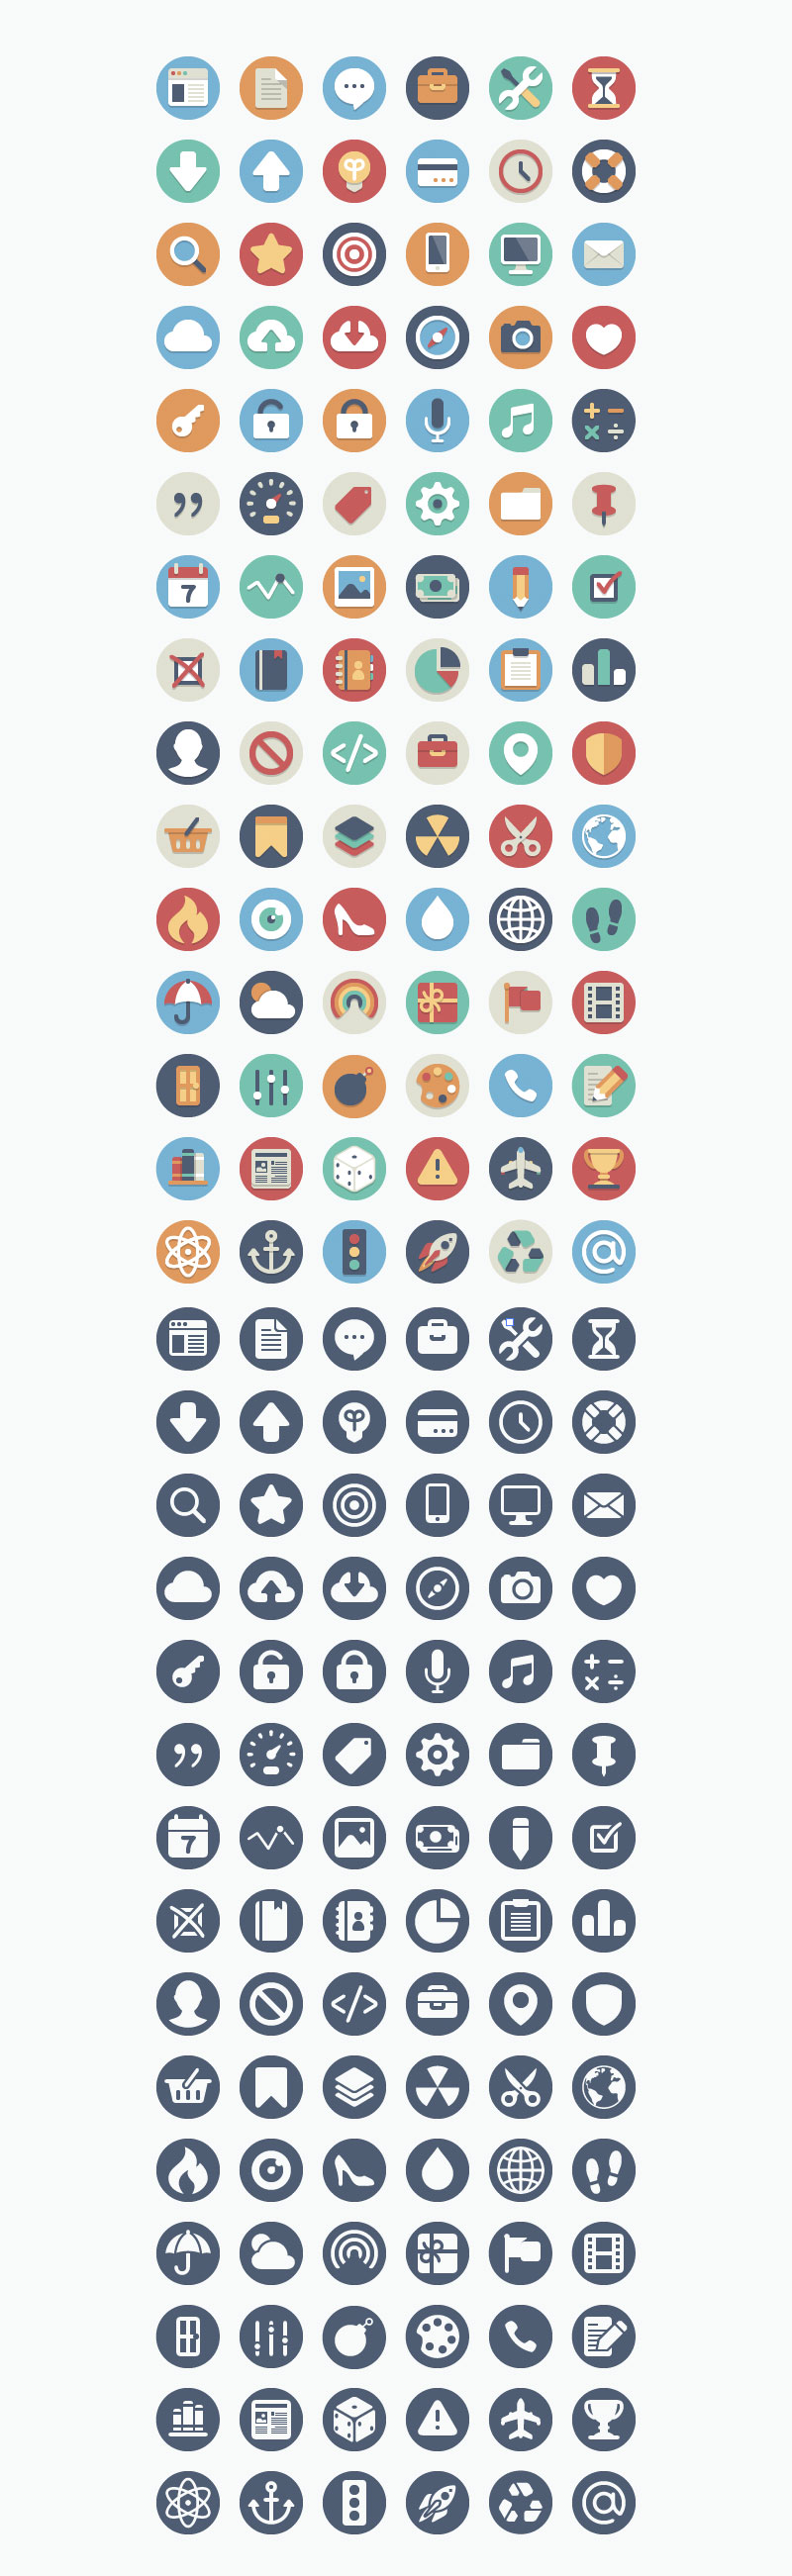 180-Free-Beautiful-Flat-Icons